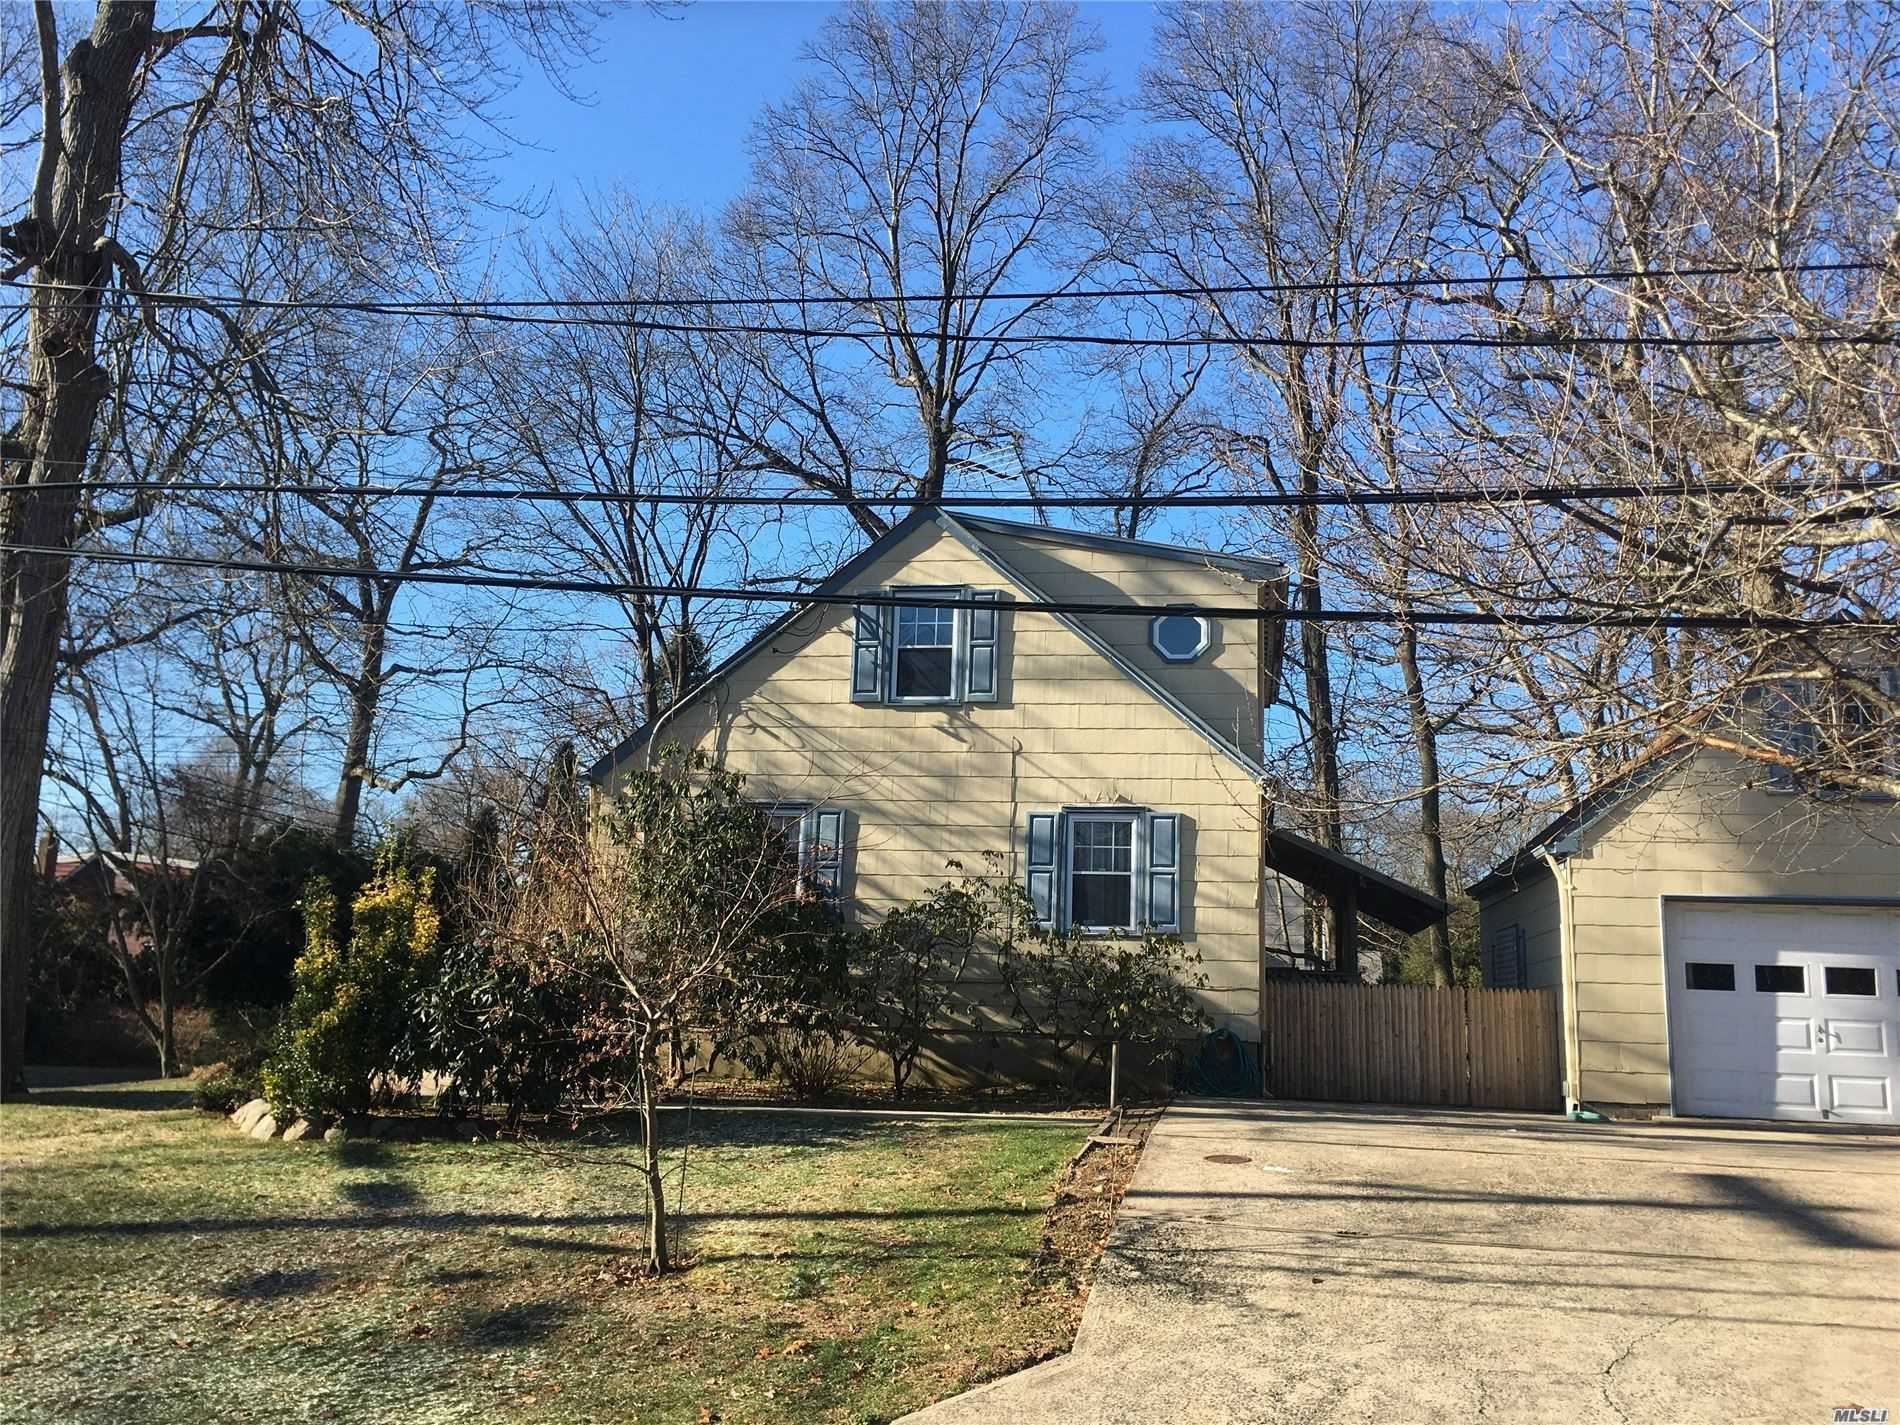 17 Kellum Street, Huntington, NY 11746 - MLS#: 3187193